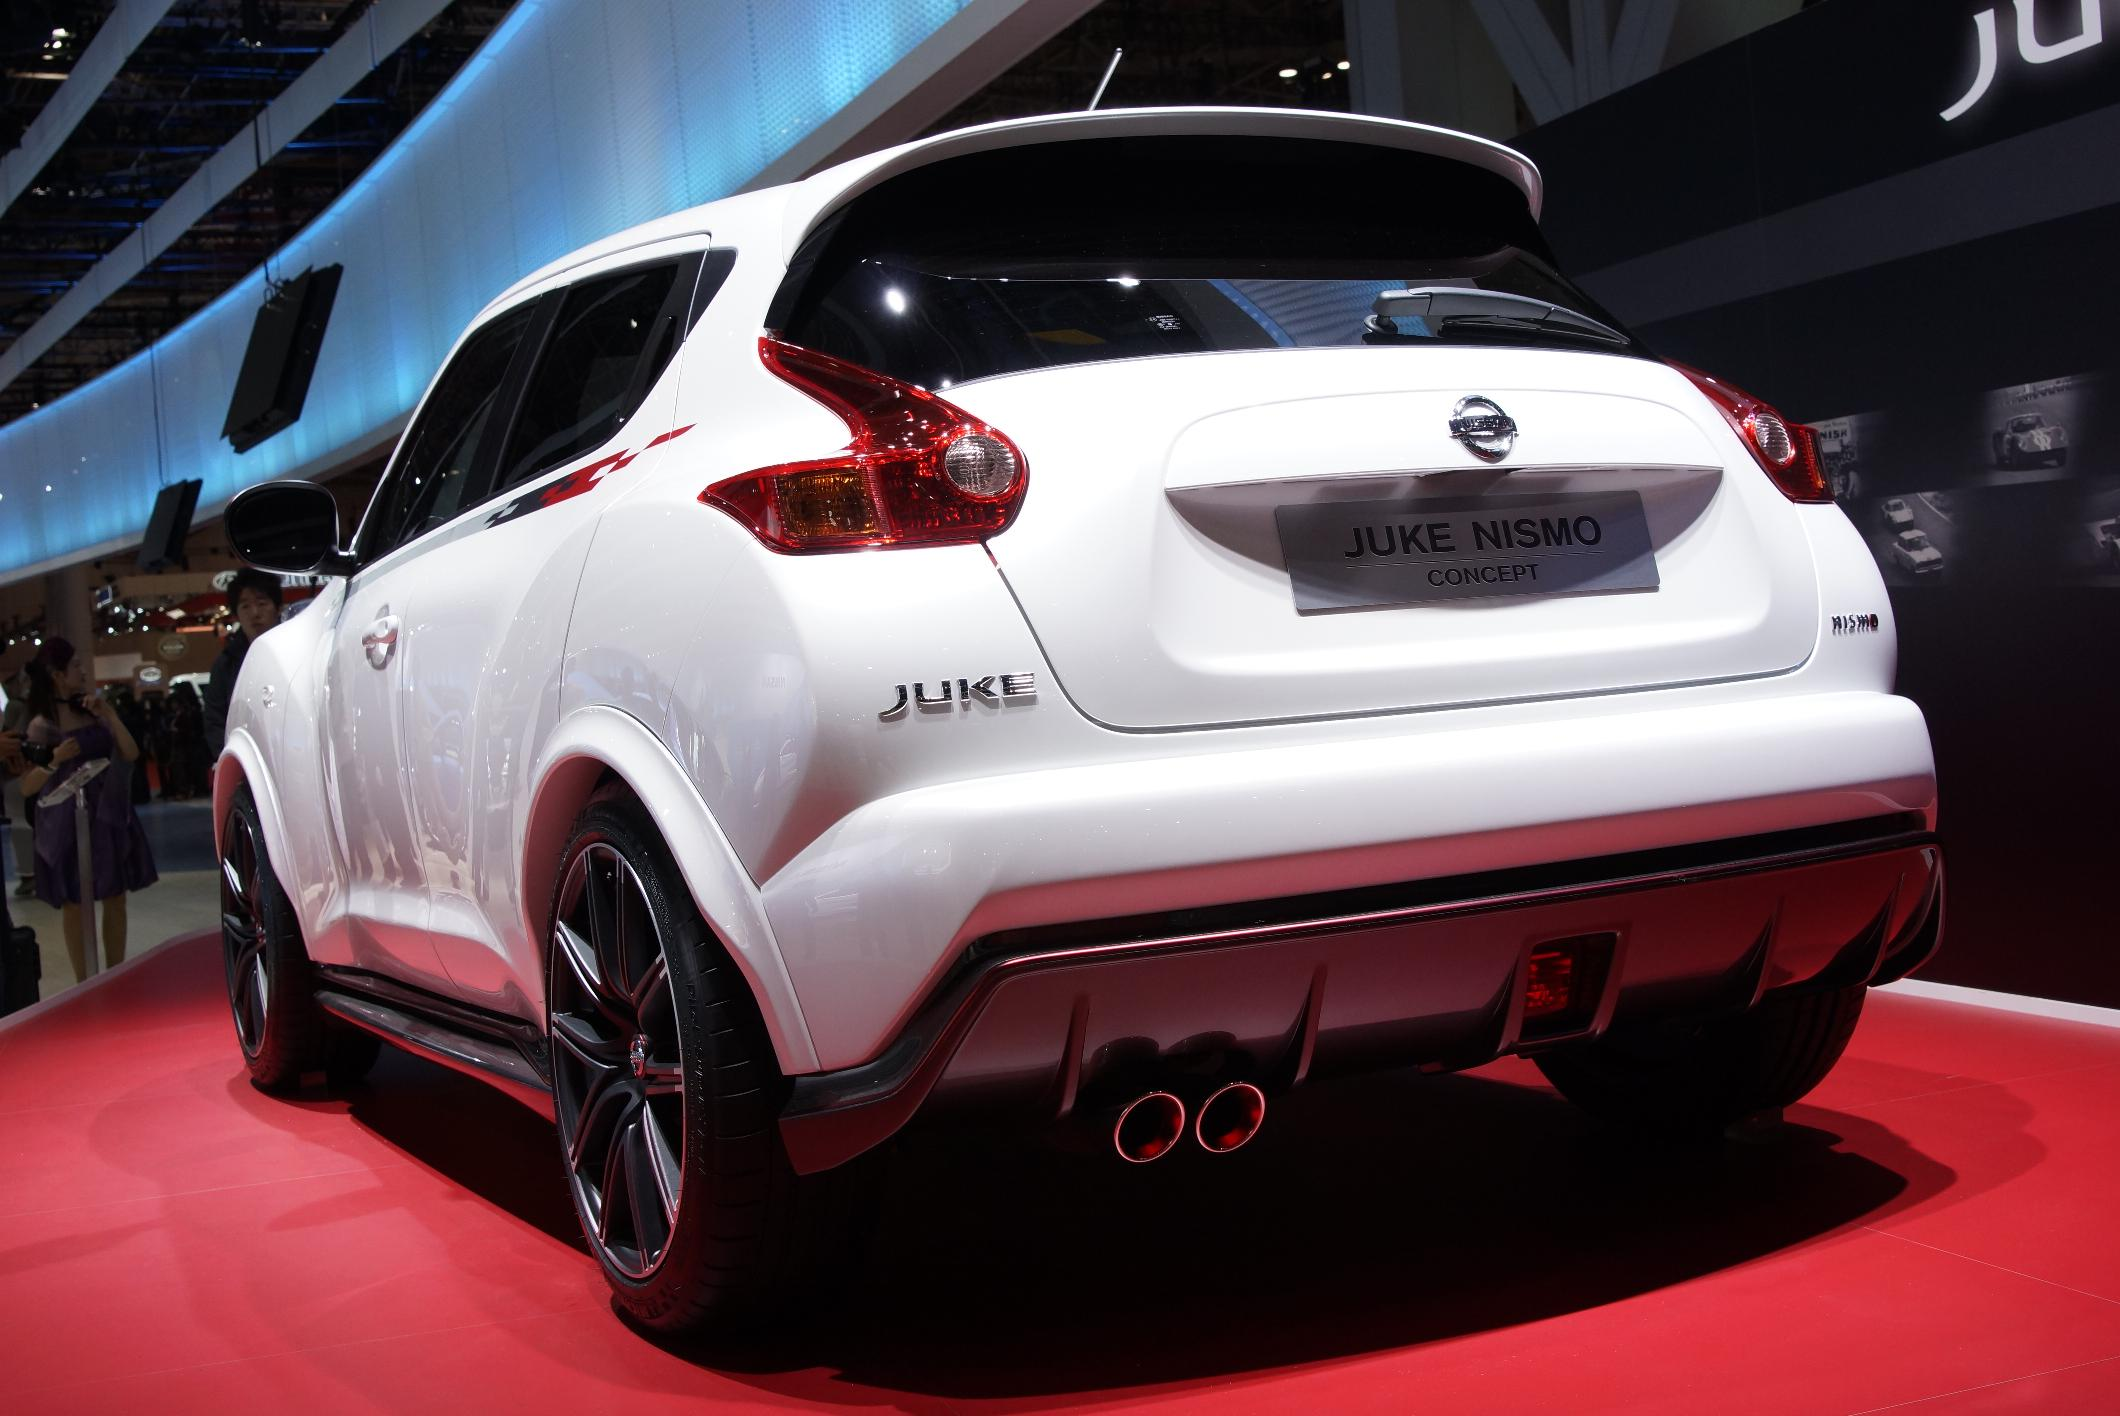 2012 nissan juke nismo concept gallery hd cars wallpaper index of wp contentgallerynissan juke nismo concept in japan 2011 nissan juke nismo concept in japan vanachro Images